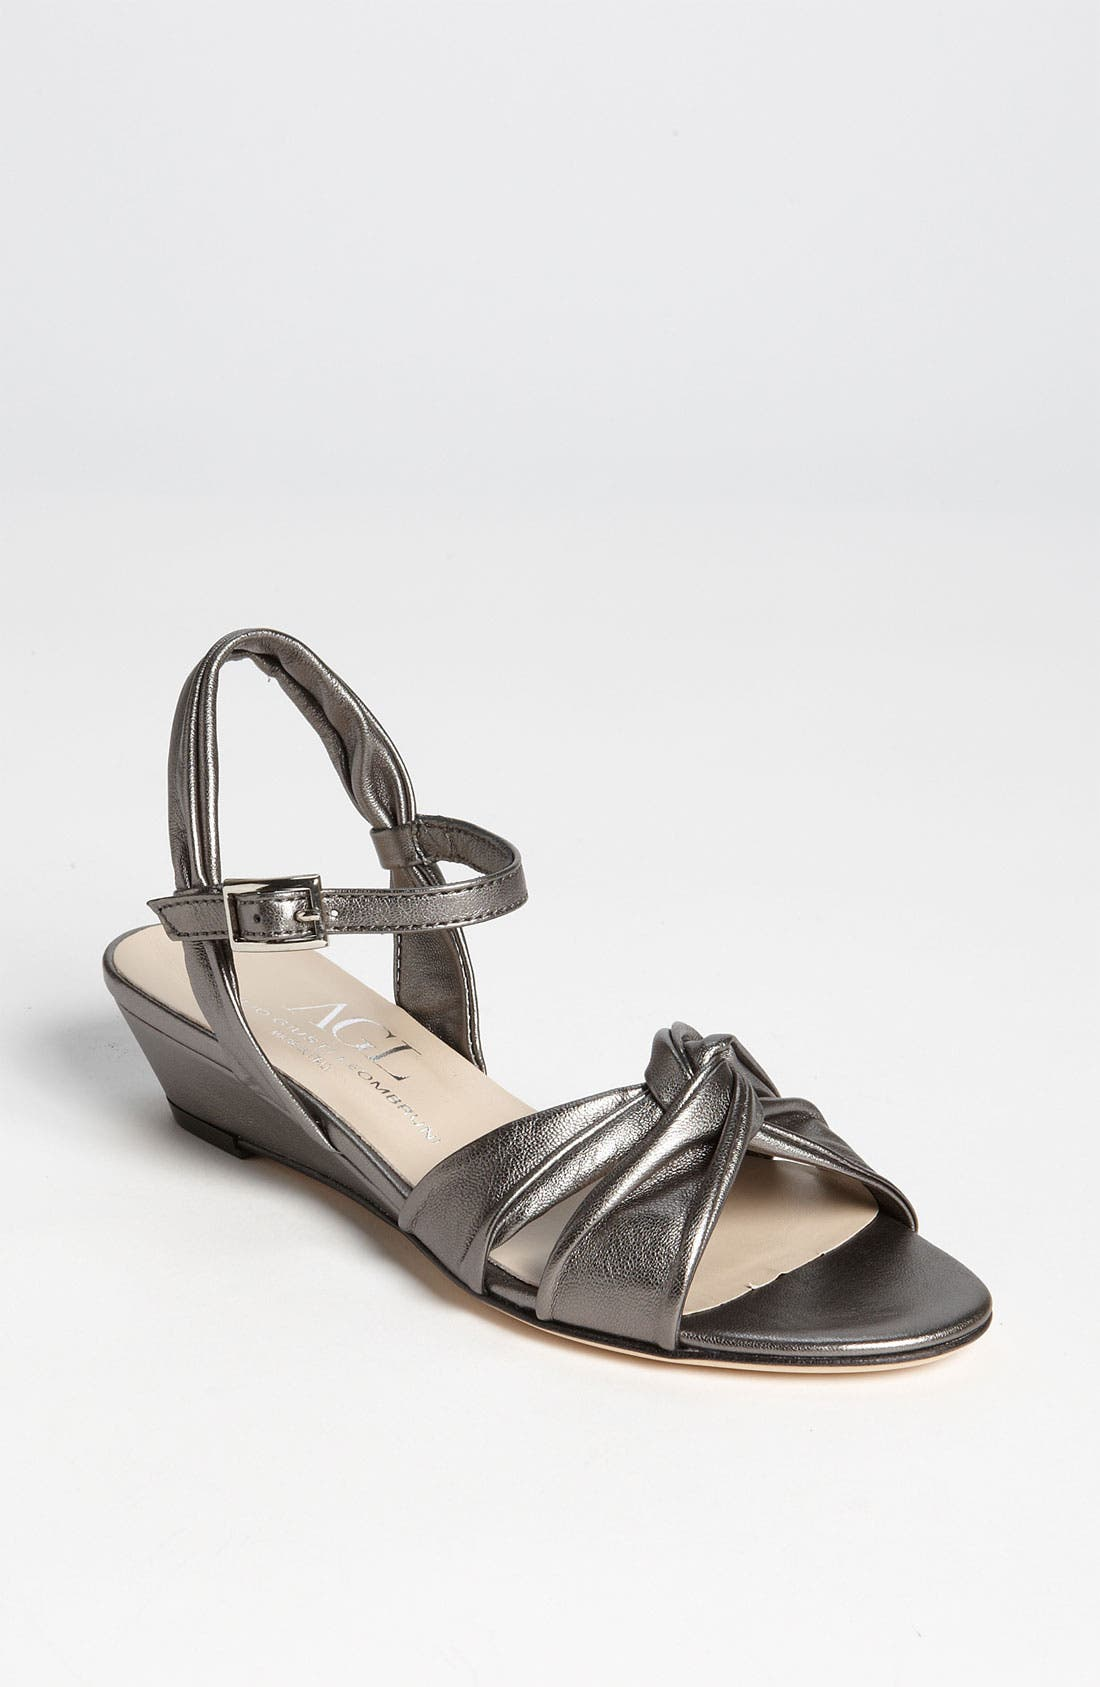 Alternate Image 1 Selected - Attilio Giusti Leombruni Mini Wedge Sandal